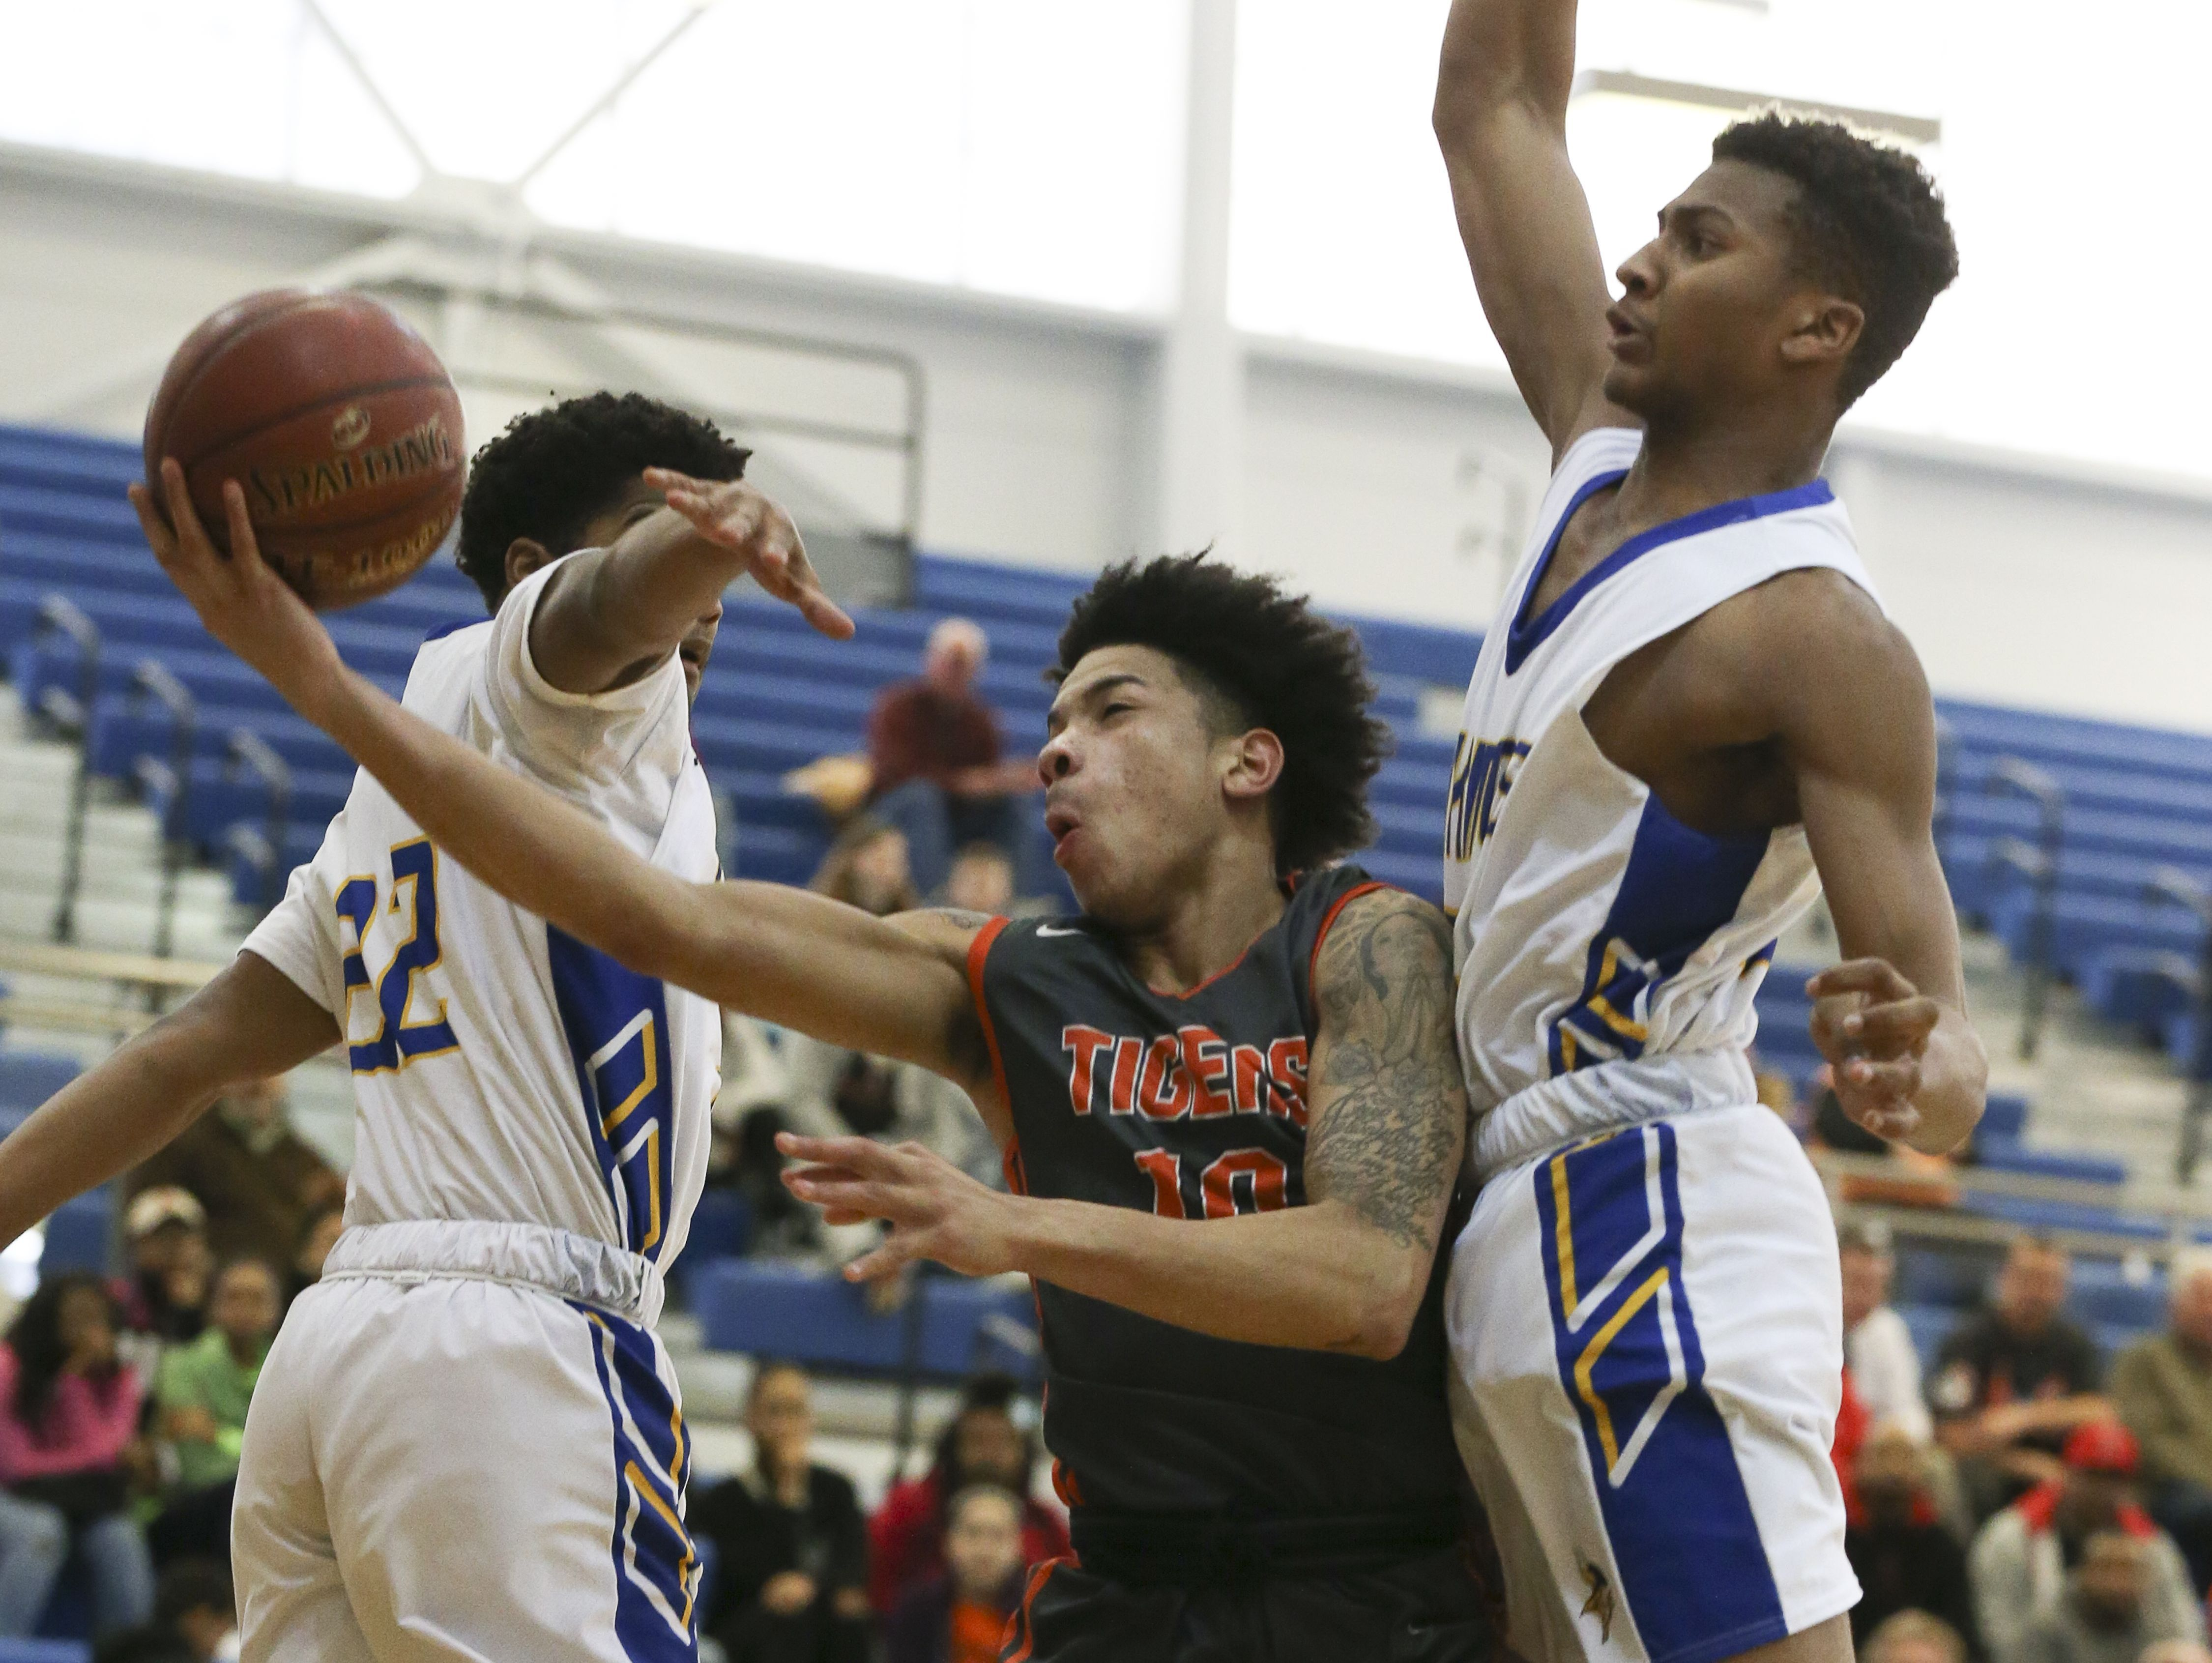 Fern Creek's Ahmad Price (10) splits the defense of Valley's Eric George (22) and Jerry Davis (24) during their 6th Region semifinal game at Valley High School. Mar. 3, 2017